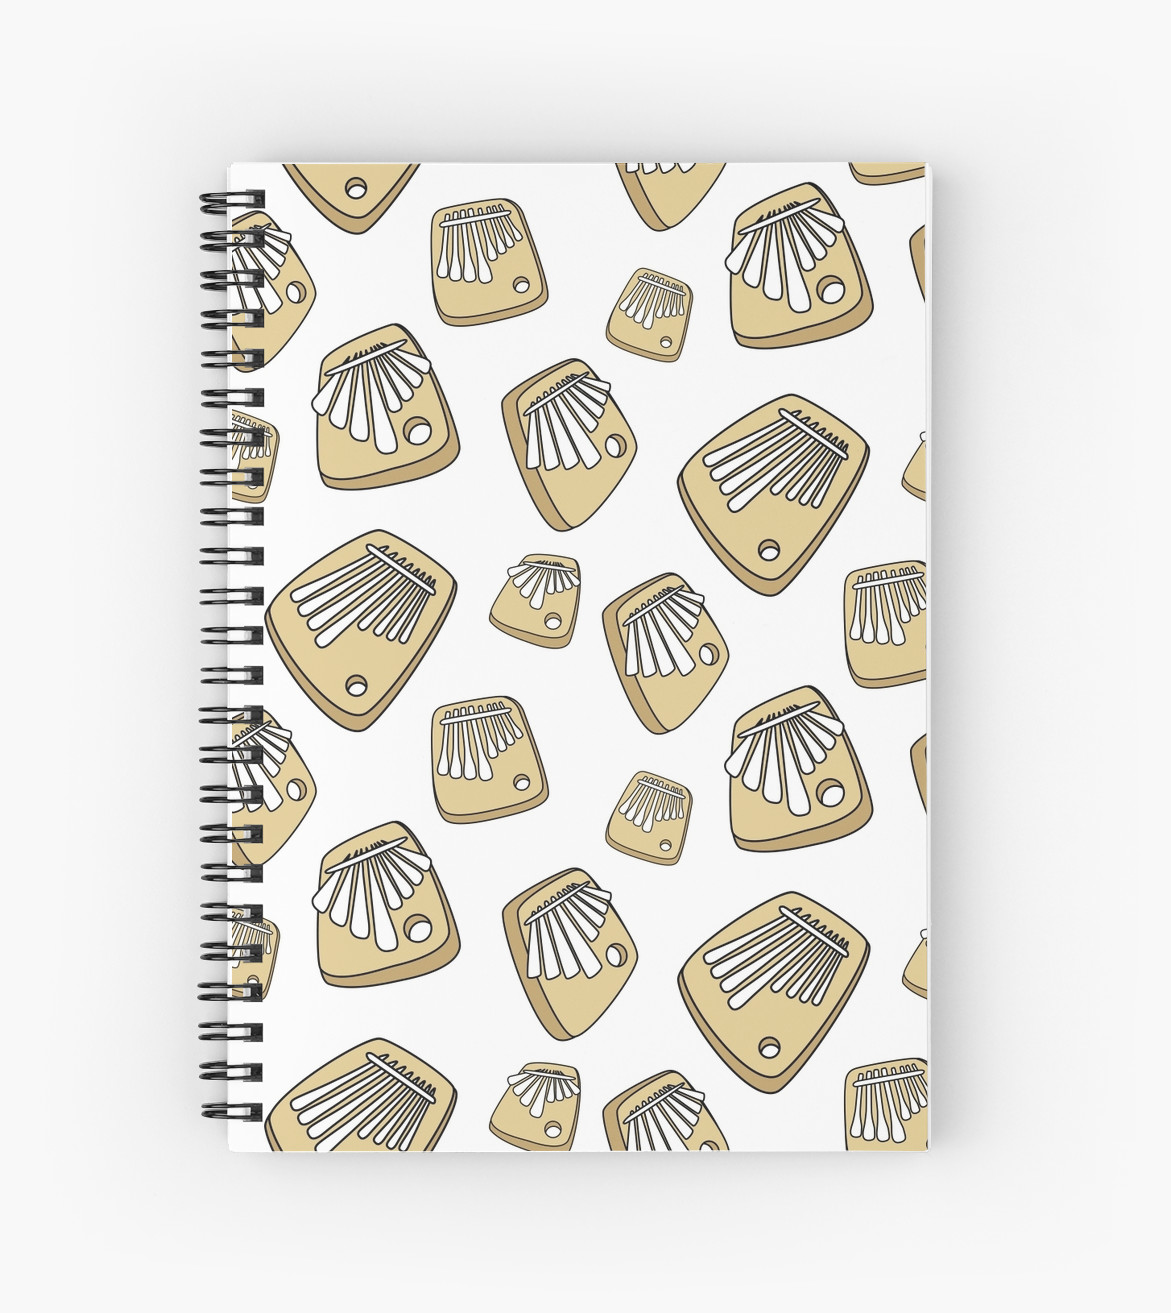 mbira-shower-spiral-notepad.jpg